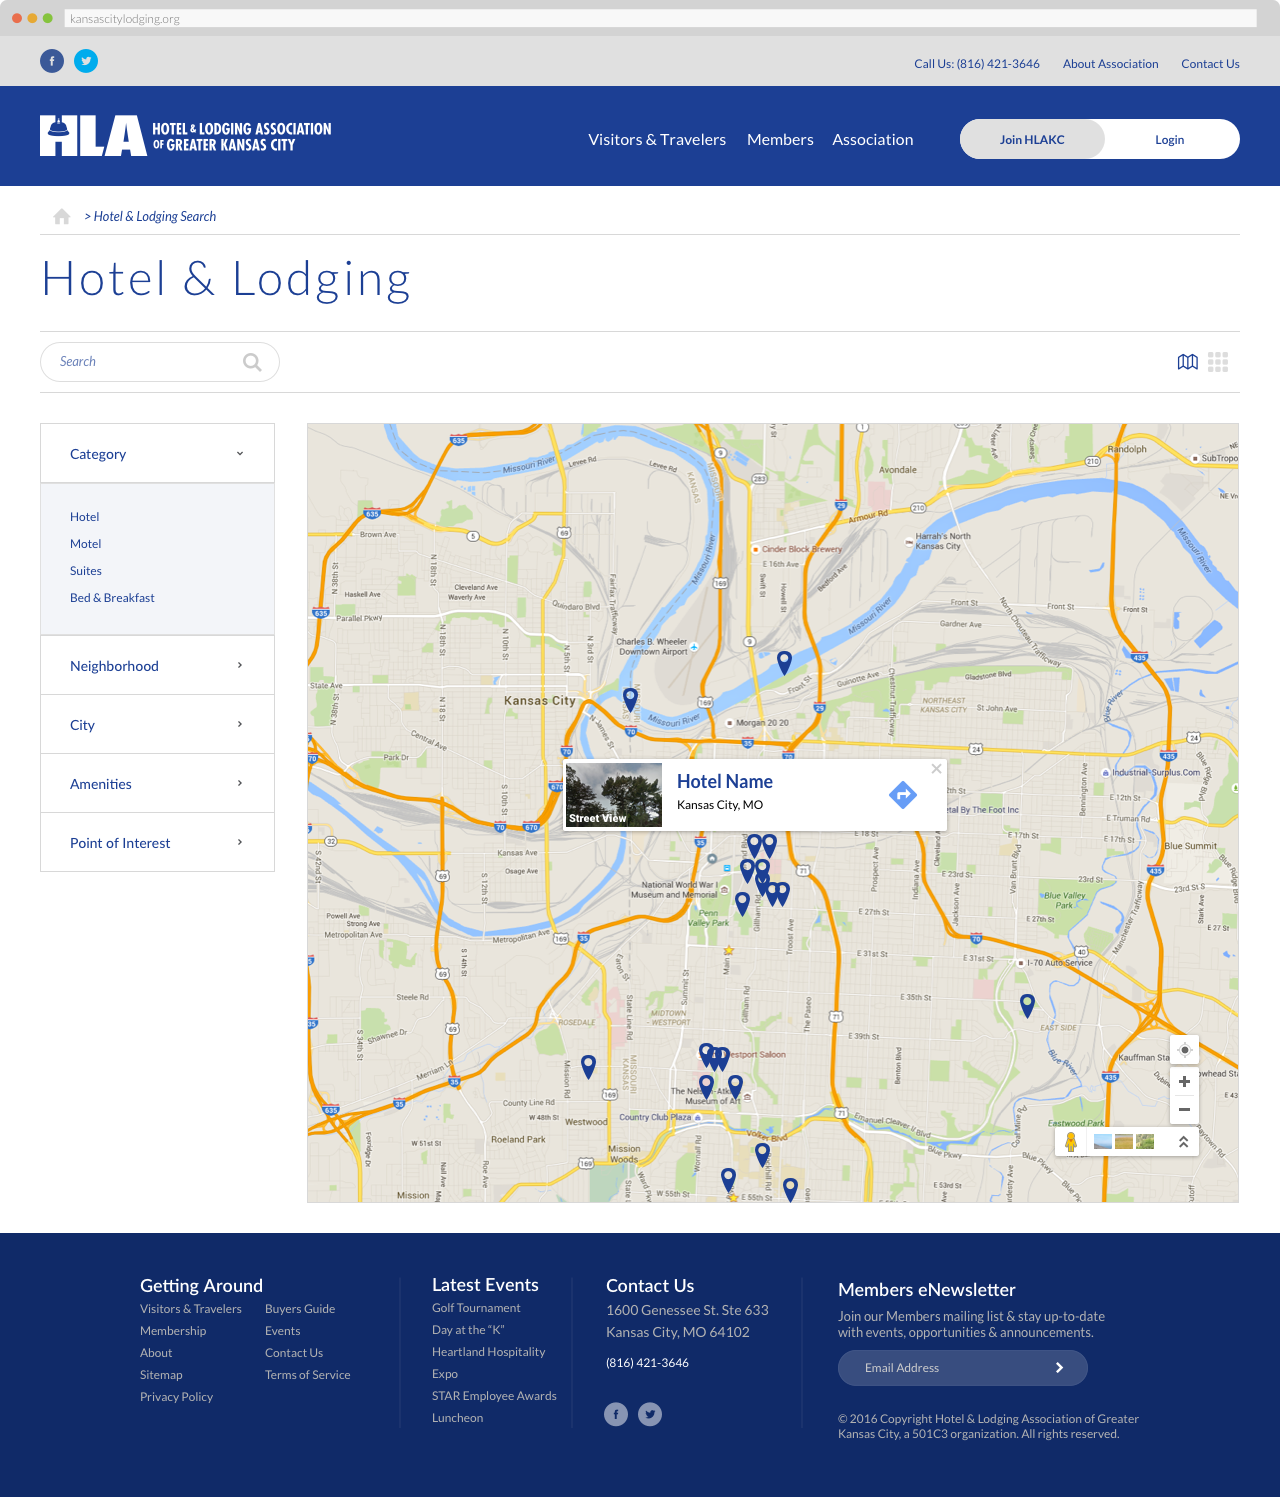 The Hotel & Lodging Association of Greater Kansas - Hotel & Lodging Search, Map View